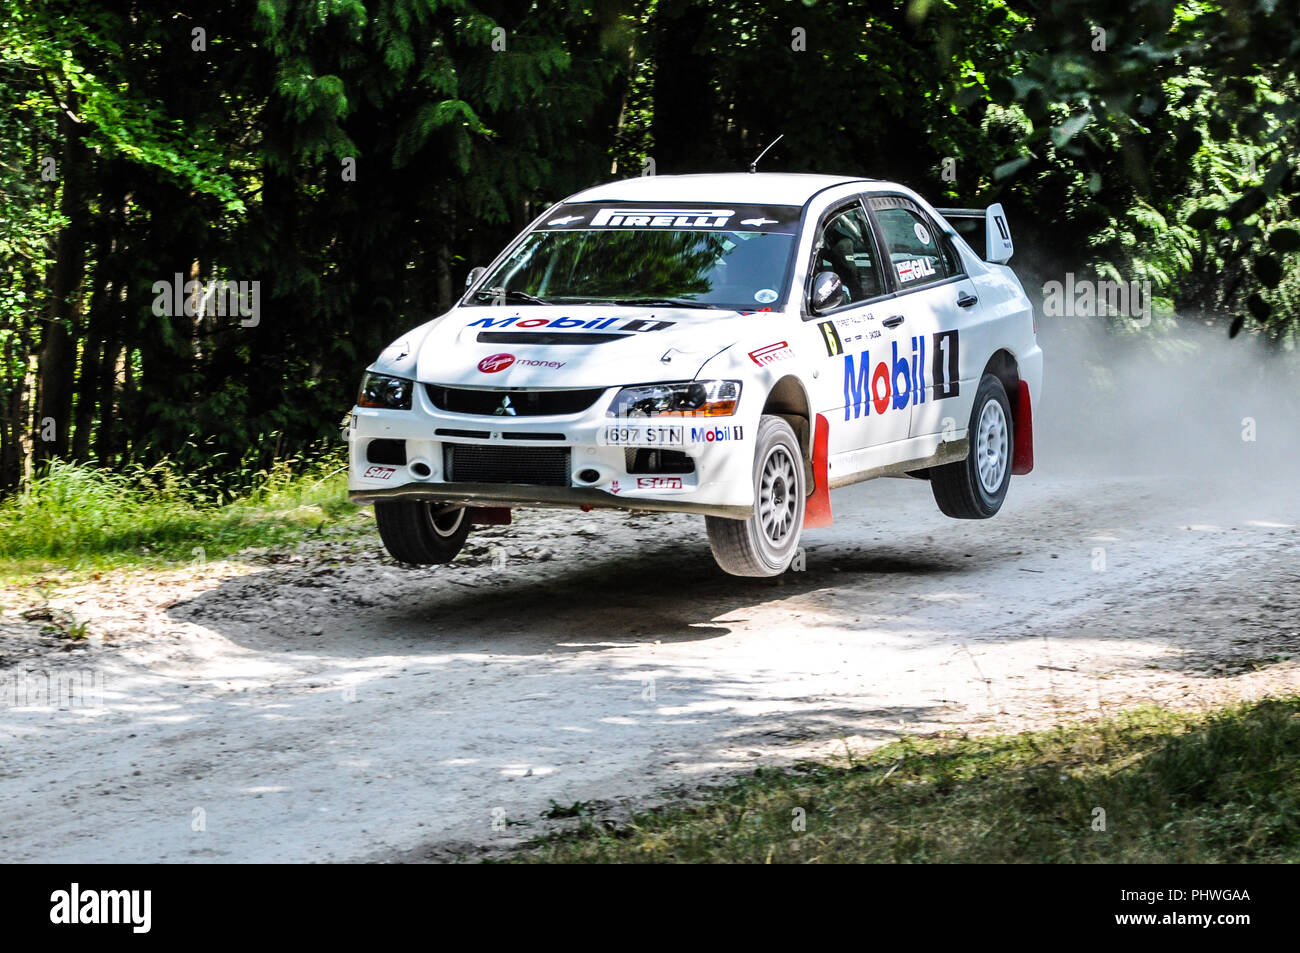 Mitsubishi Lancer EVO IX rally car racing on the special forest stage at the Goodwood Festival of Speed. Jumping. Airborne. Flying. Rob Gill - Stock Image